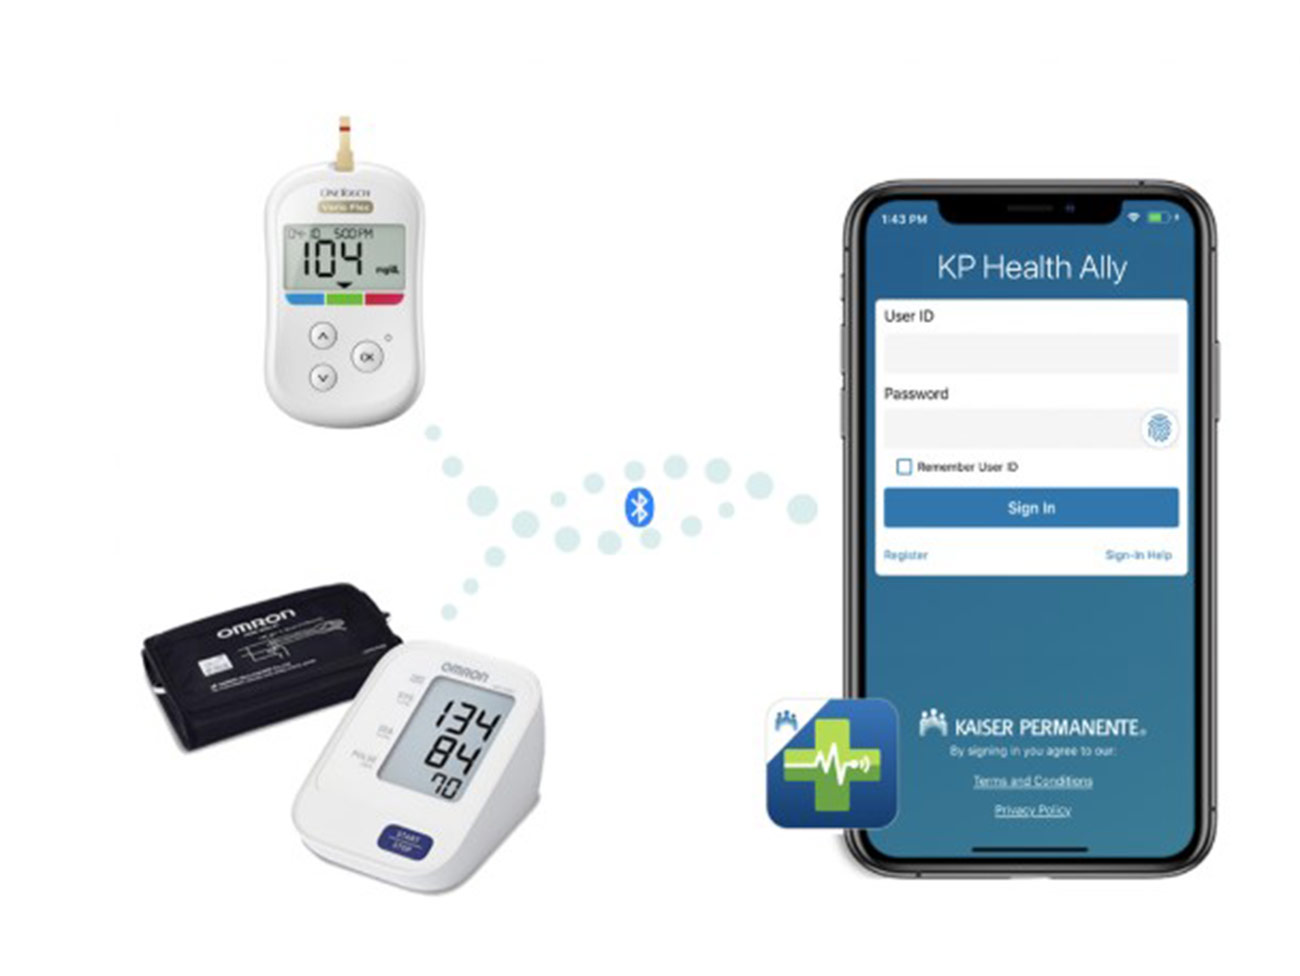 Electronic monitors and a phone with the KP Health Ally app